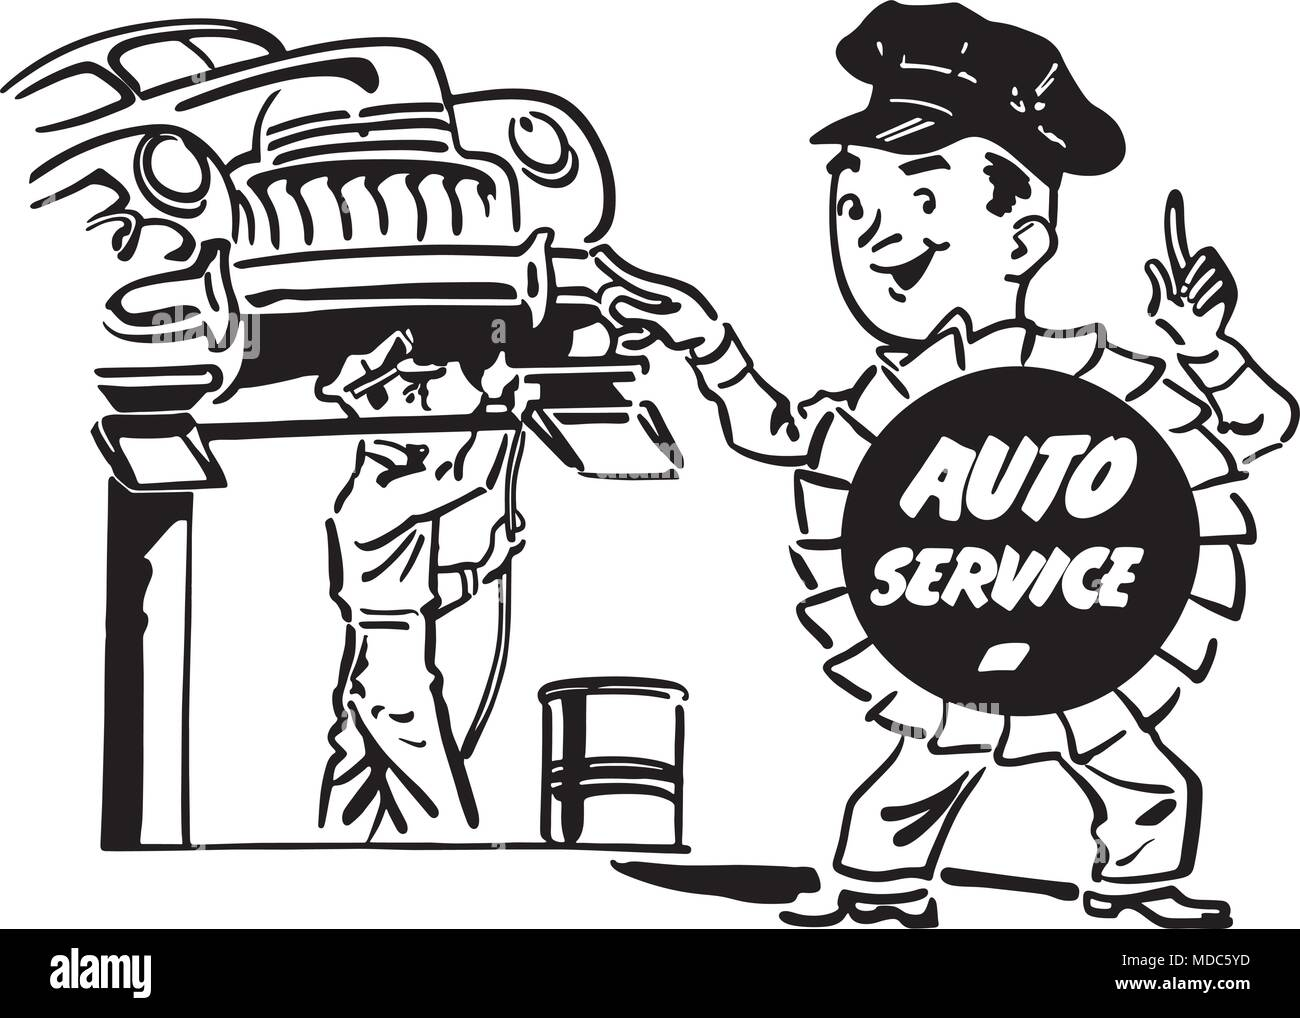 automobile repair shop retro clipart banner stock vector art